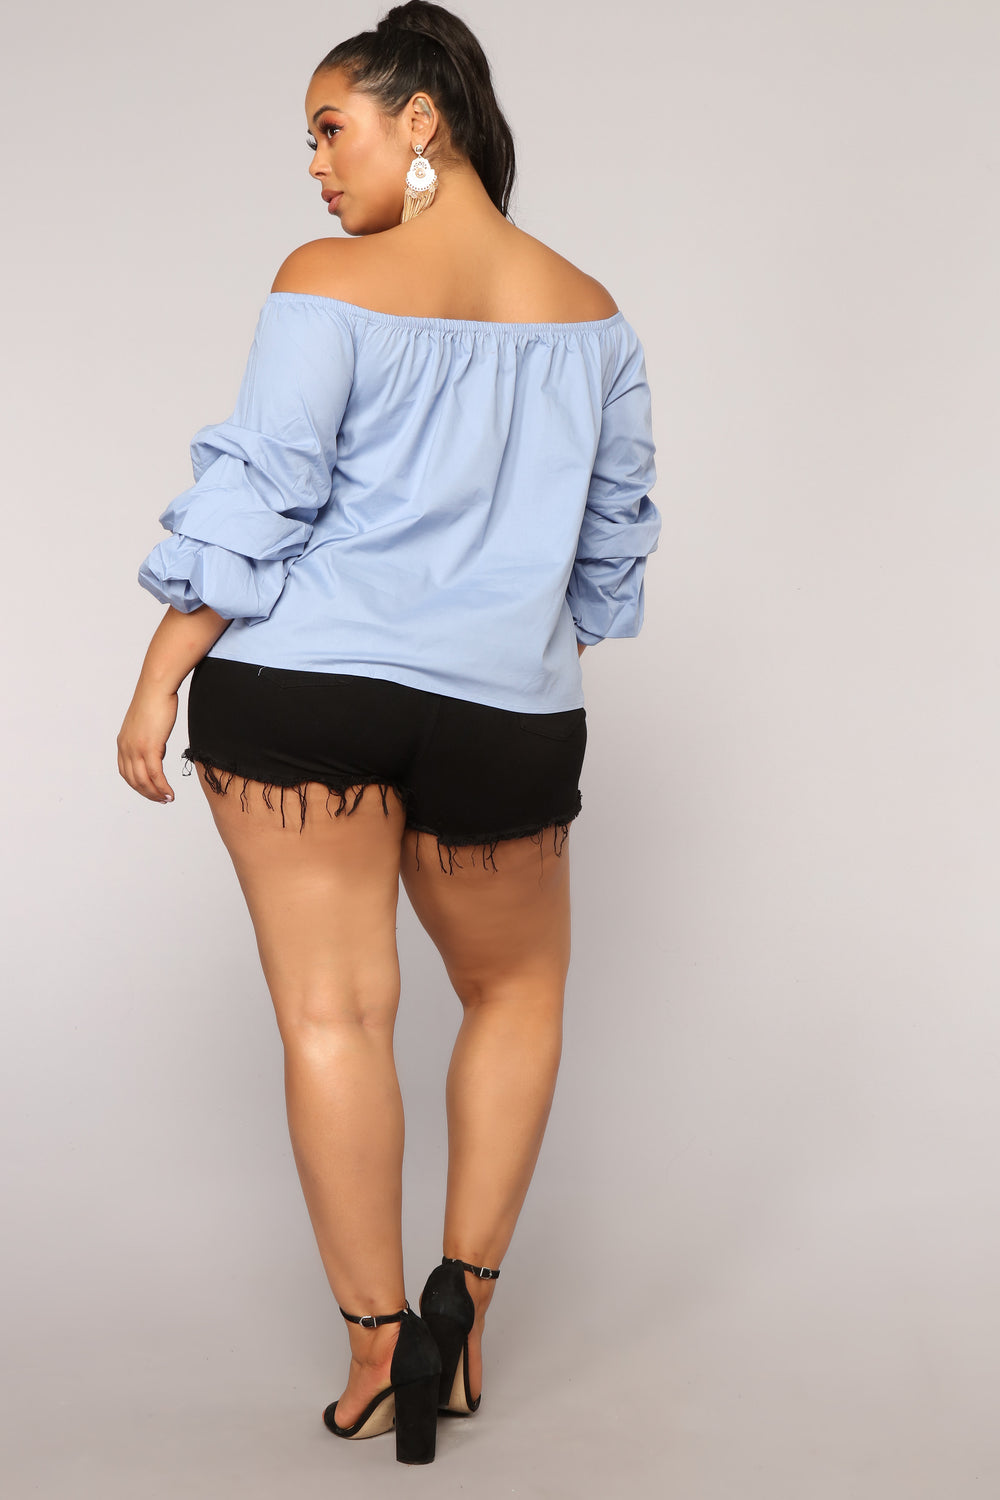 Floating On Clouds Top - Chambray